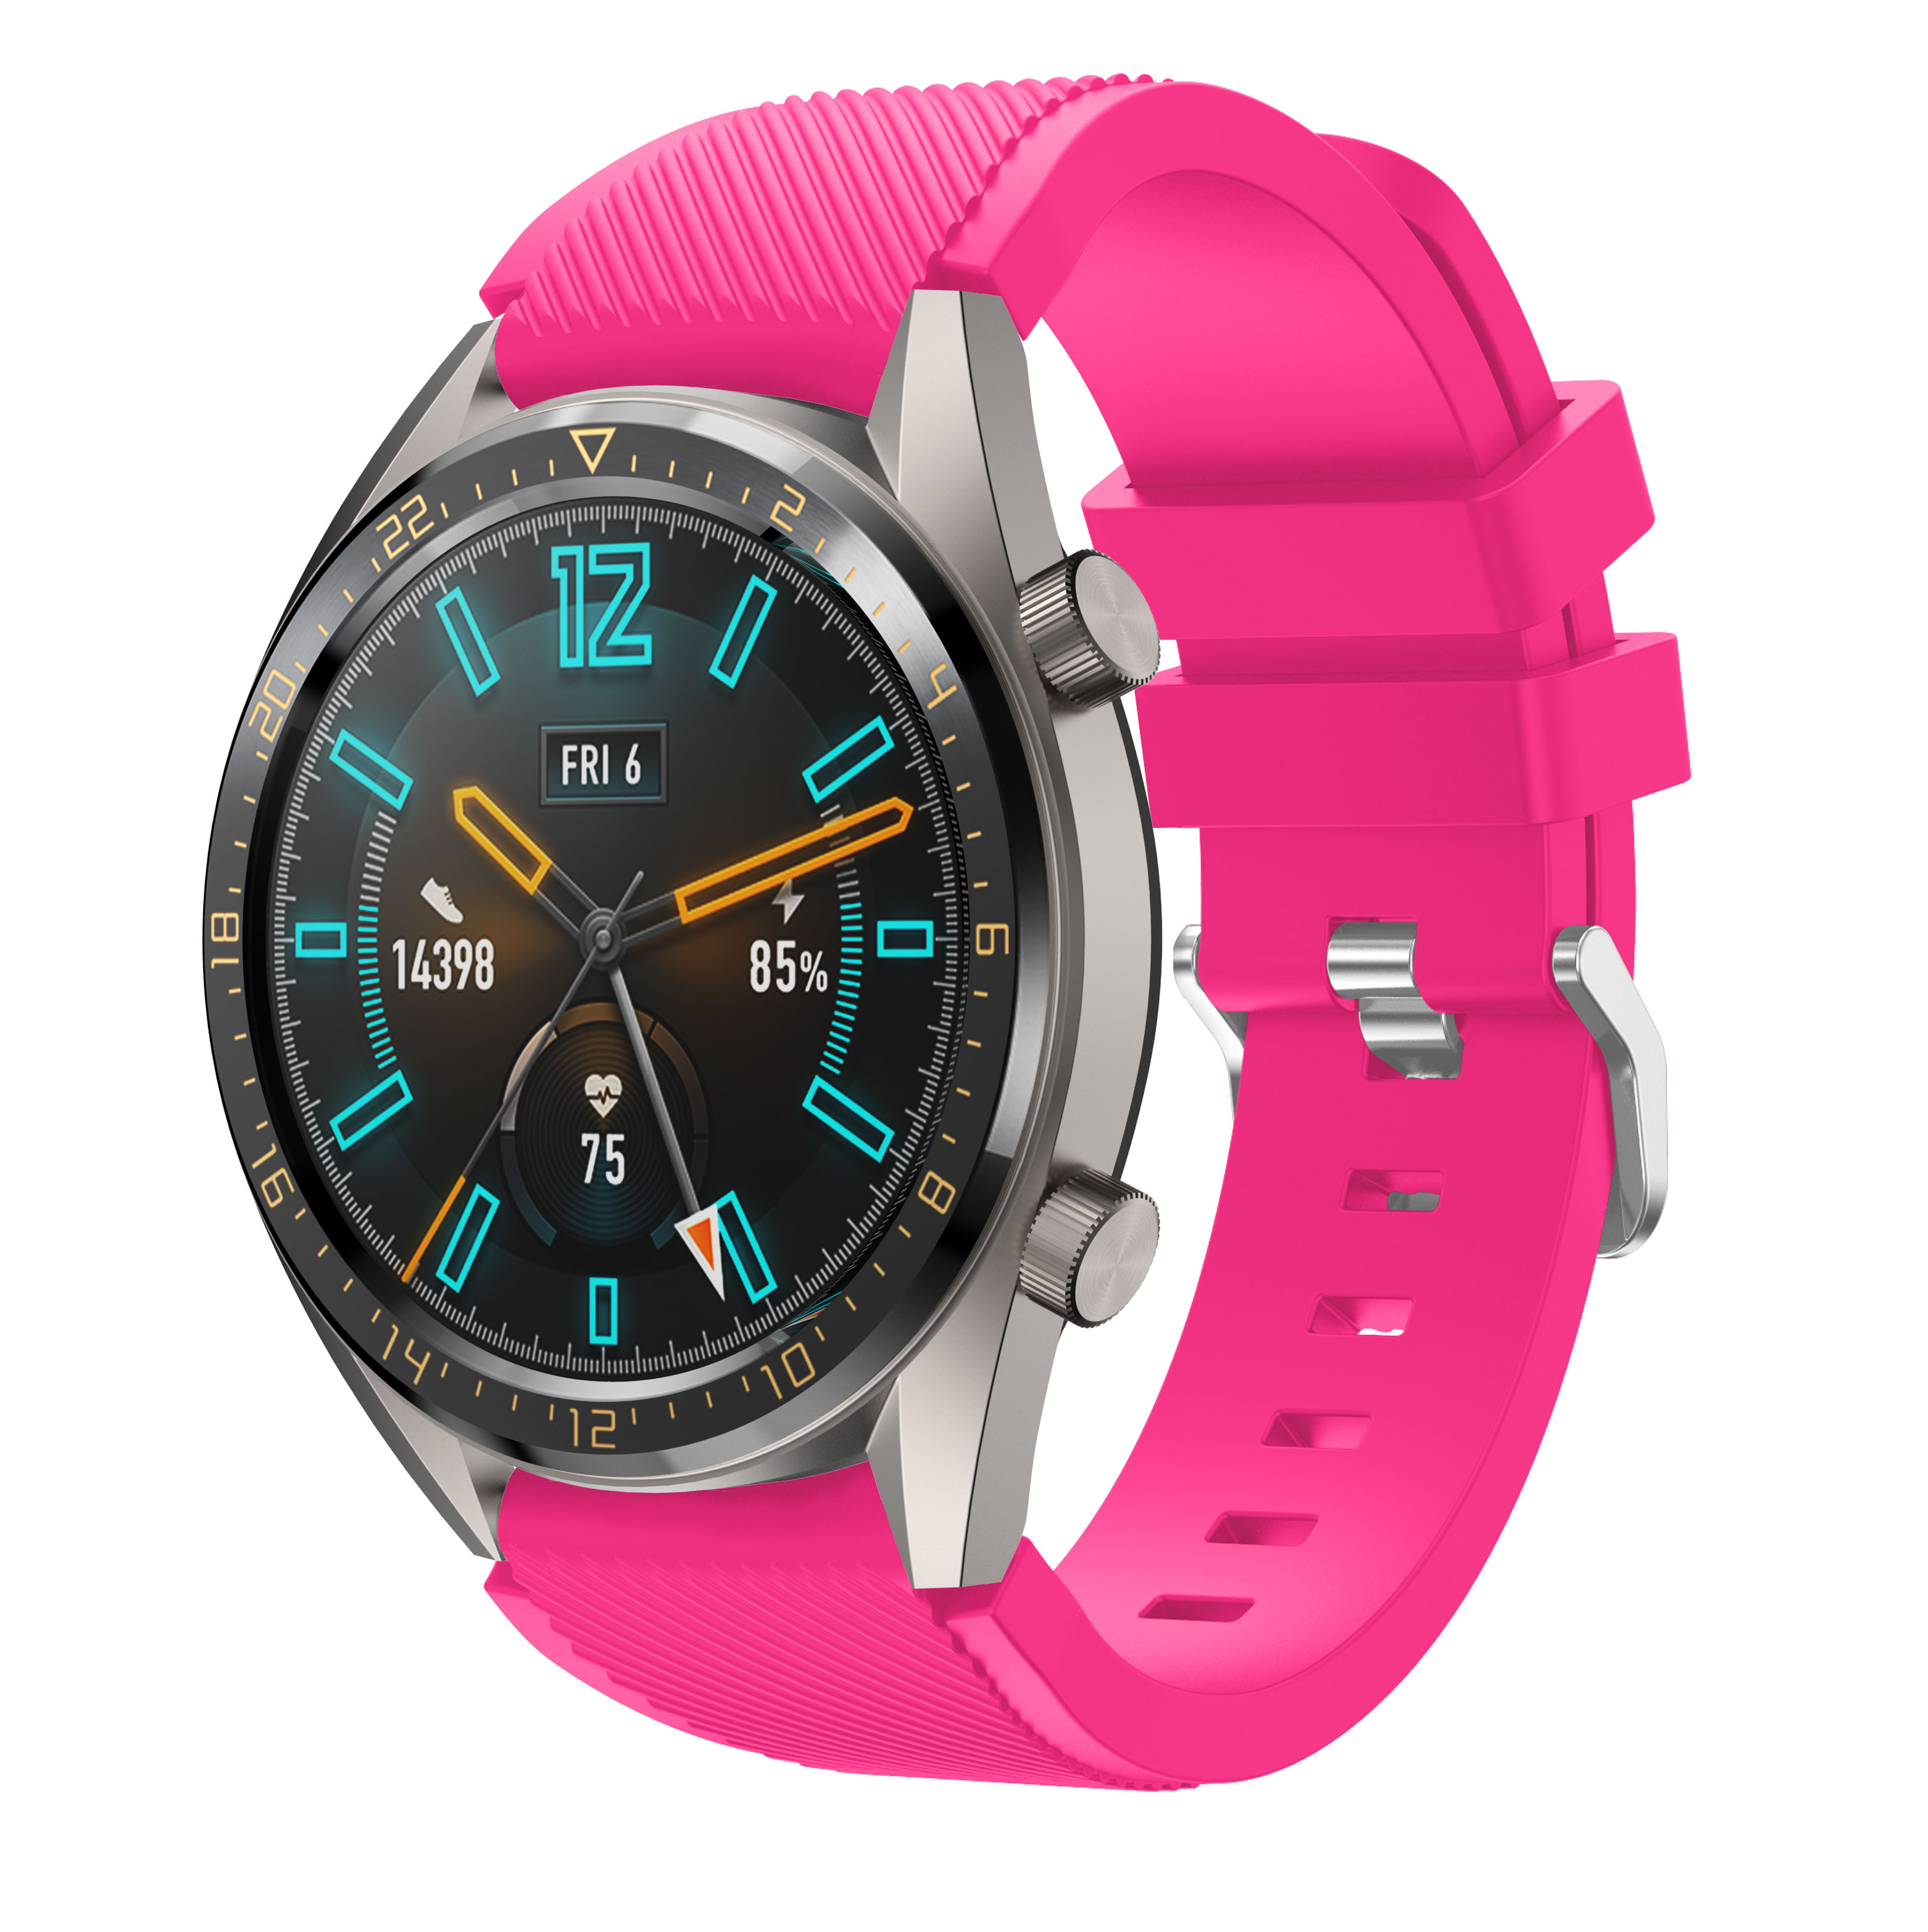 22mm Quick release bracelet For Huawel Watch GT frontier classic band For Samsung Galaxy Watch 46mm Gear S3 smart watch strap in Watchbands from Watches